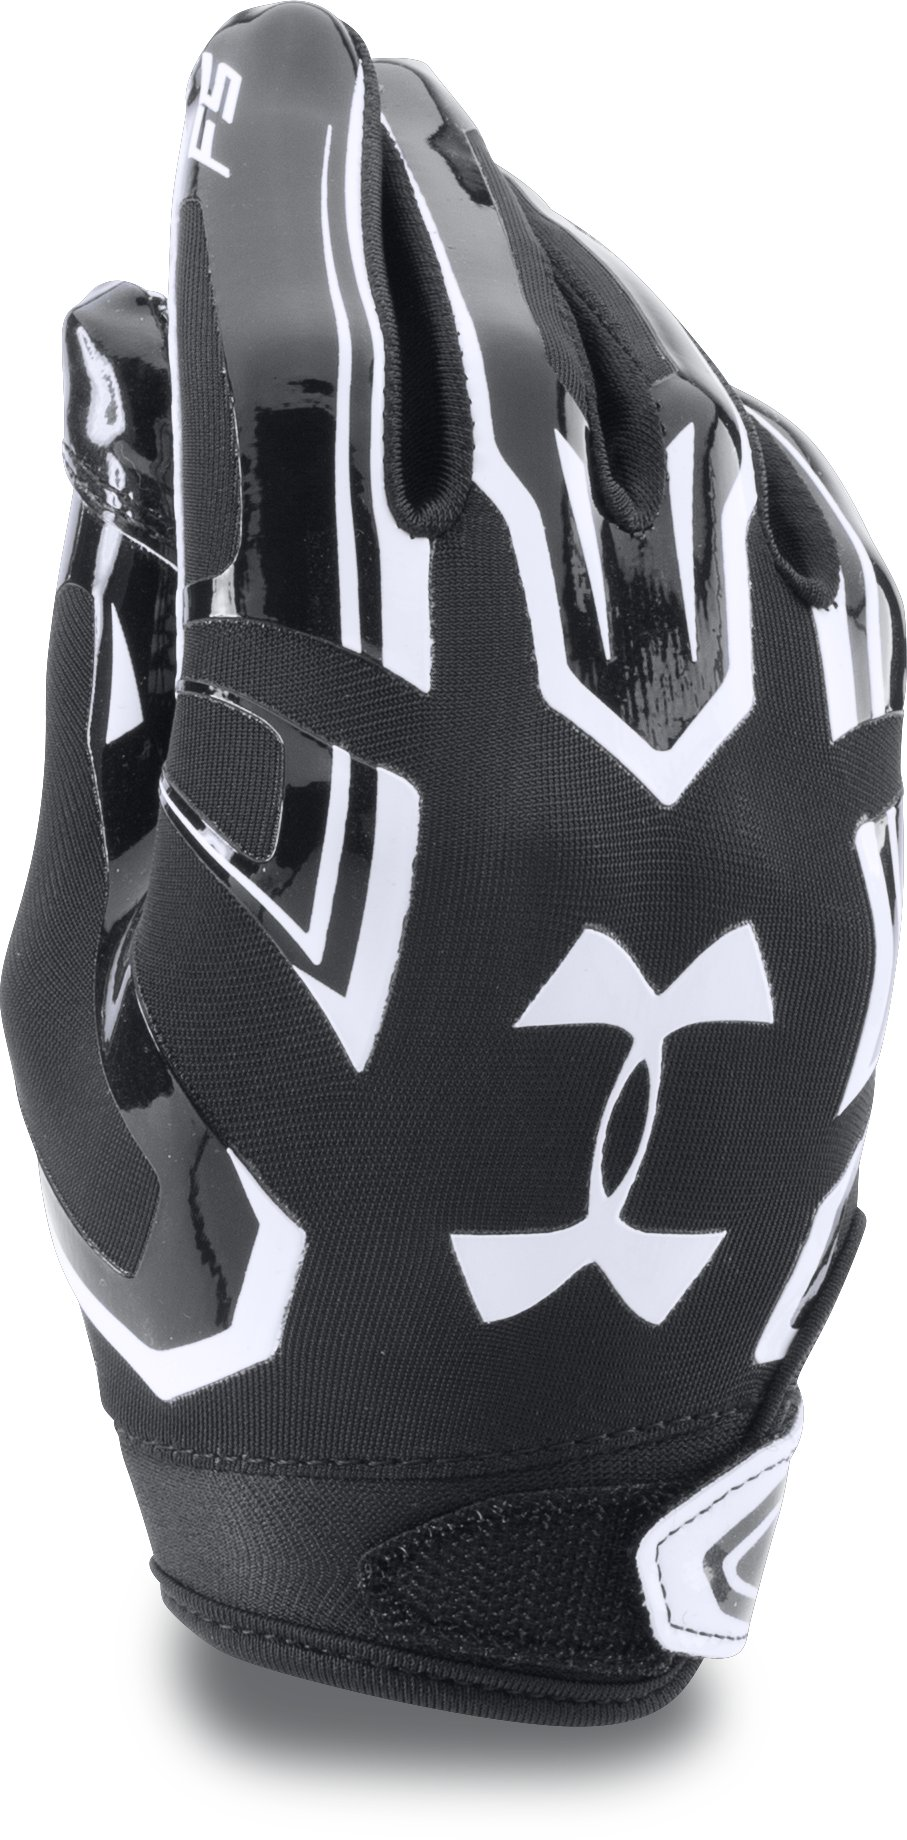 Boys' Pee Wee UA F5 Football Gloves, Black